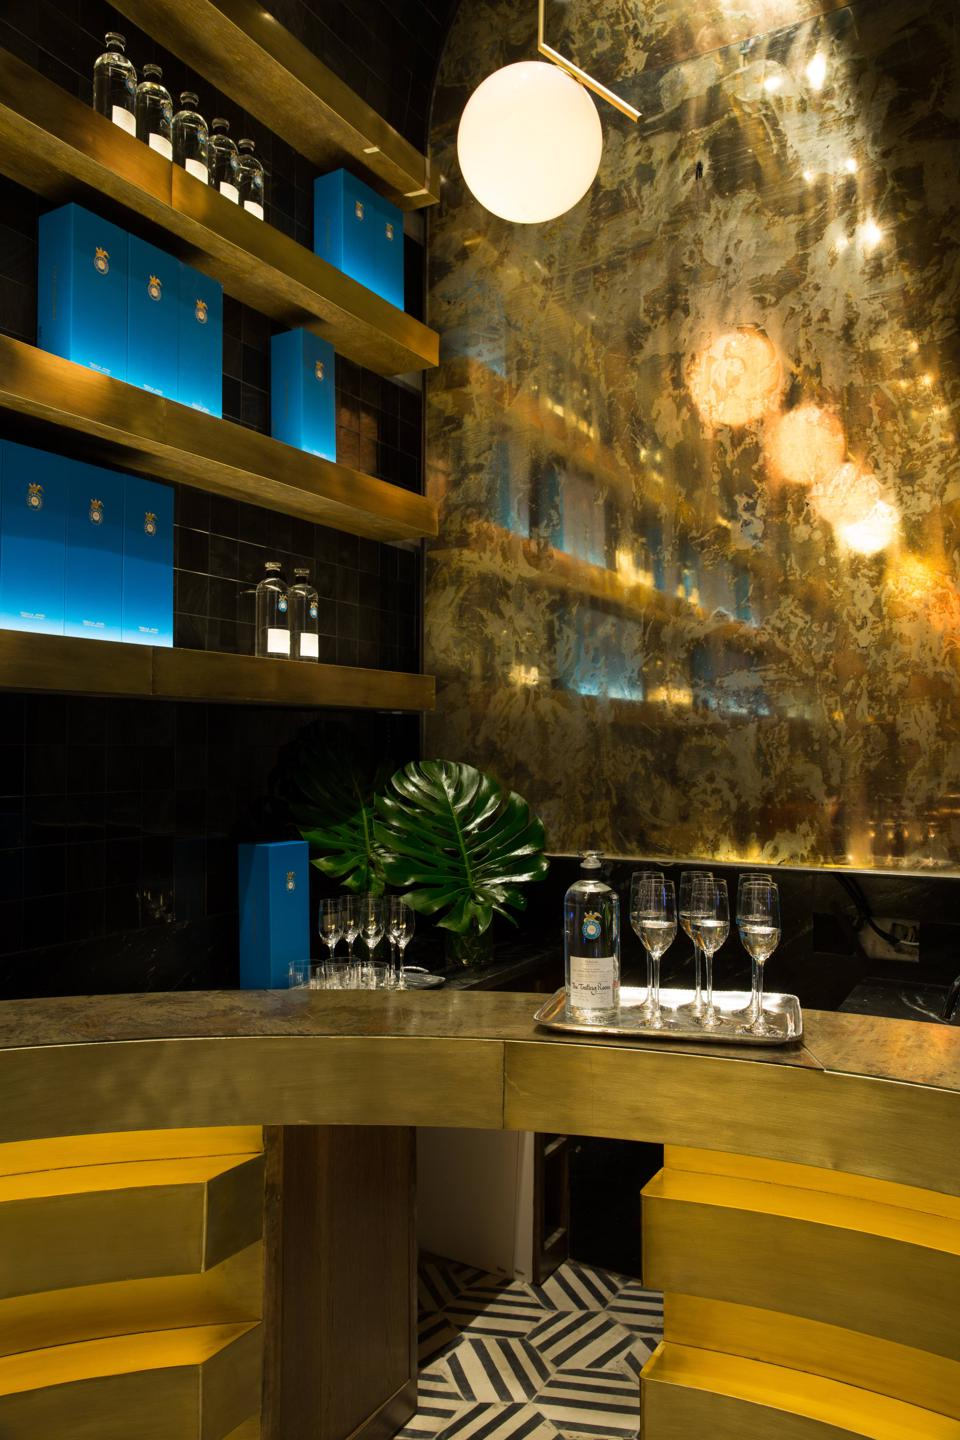 The tasting room, with a gold bar, mirrored wall and an opposing obsidian-tiled wall.